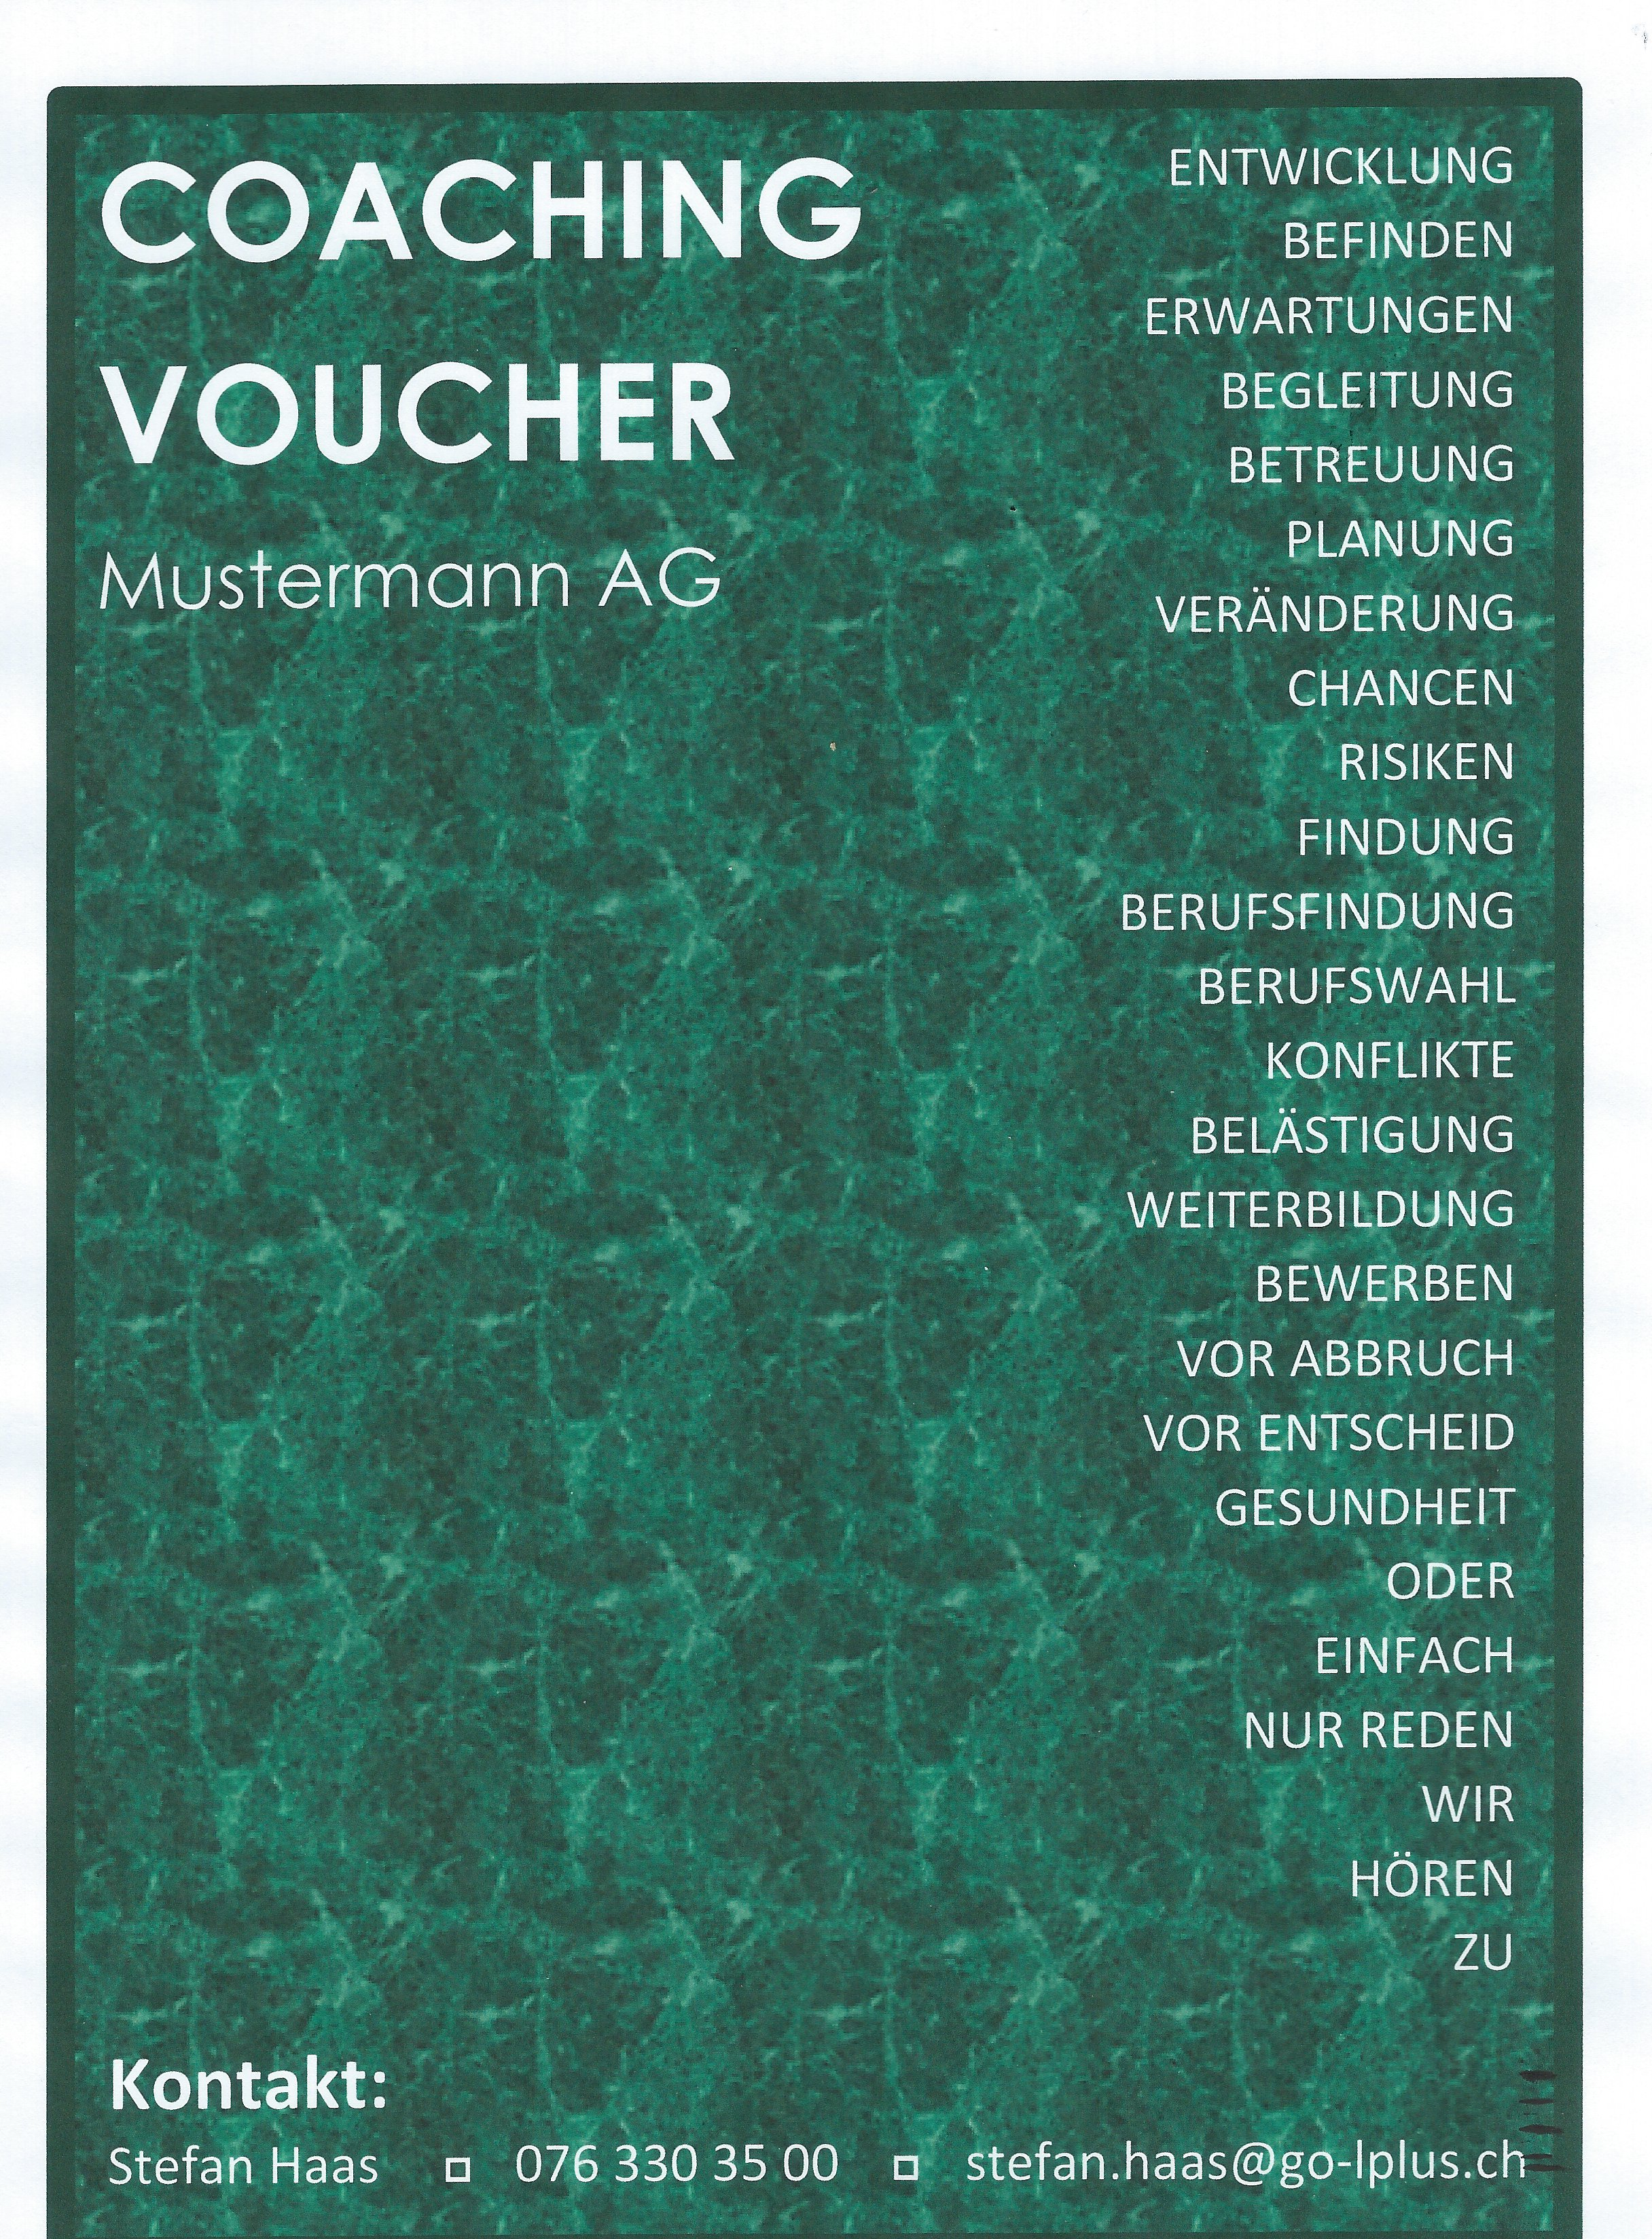 Coaching_Voucher